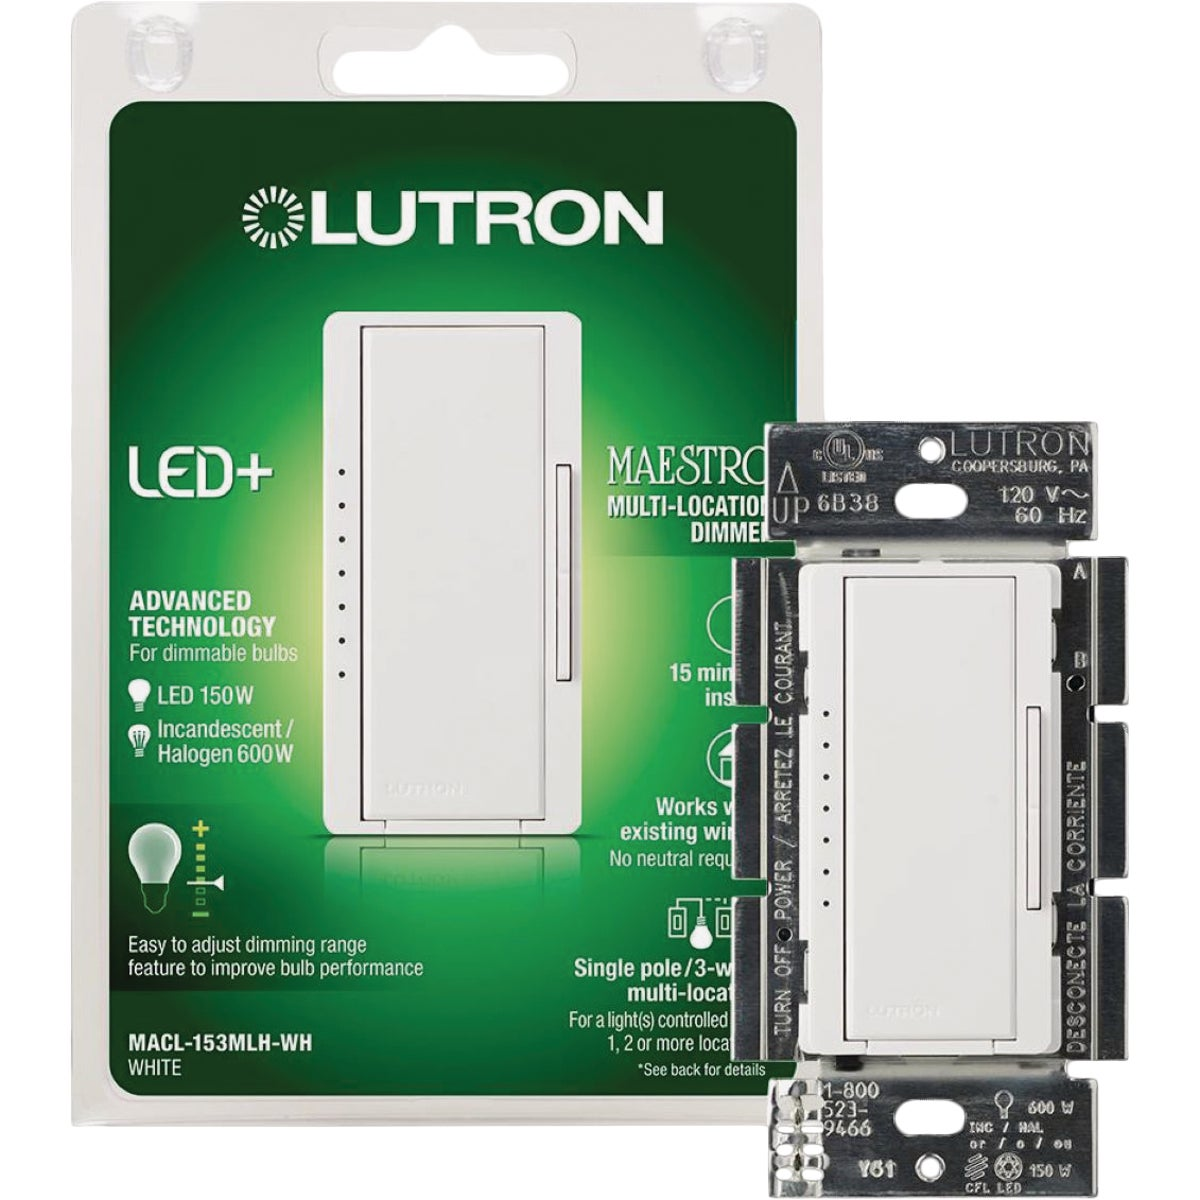 DIGITAL DIMMER - MACL-153MH-WH by Lutron Elect Co Inc